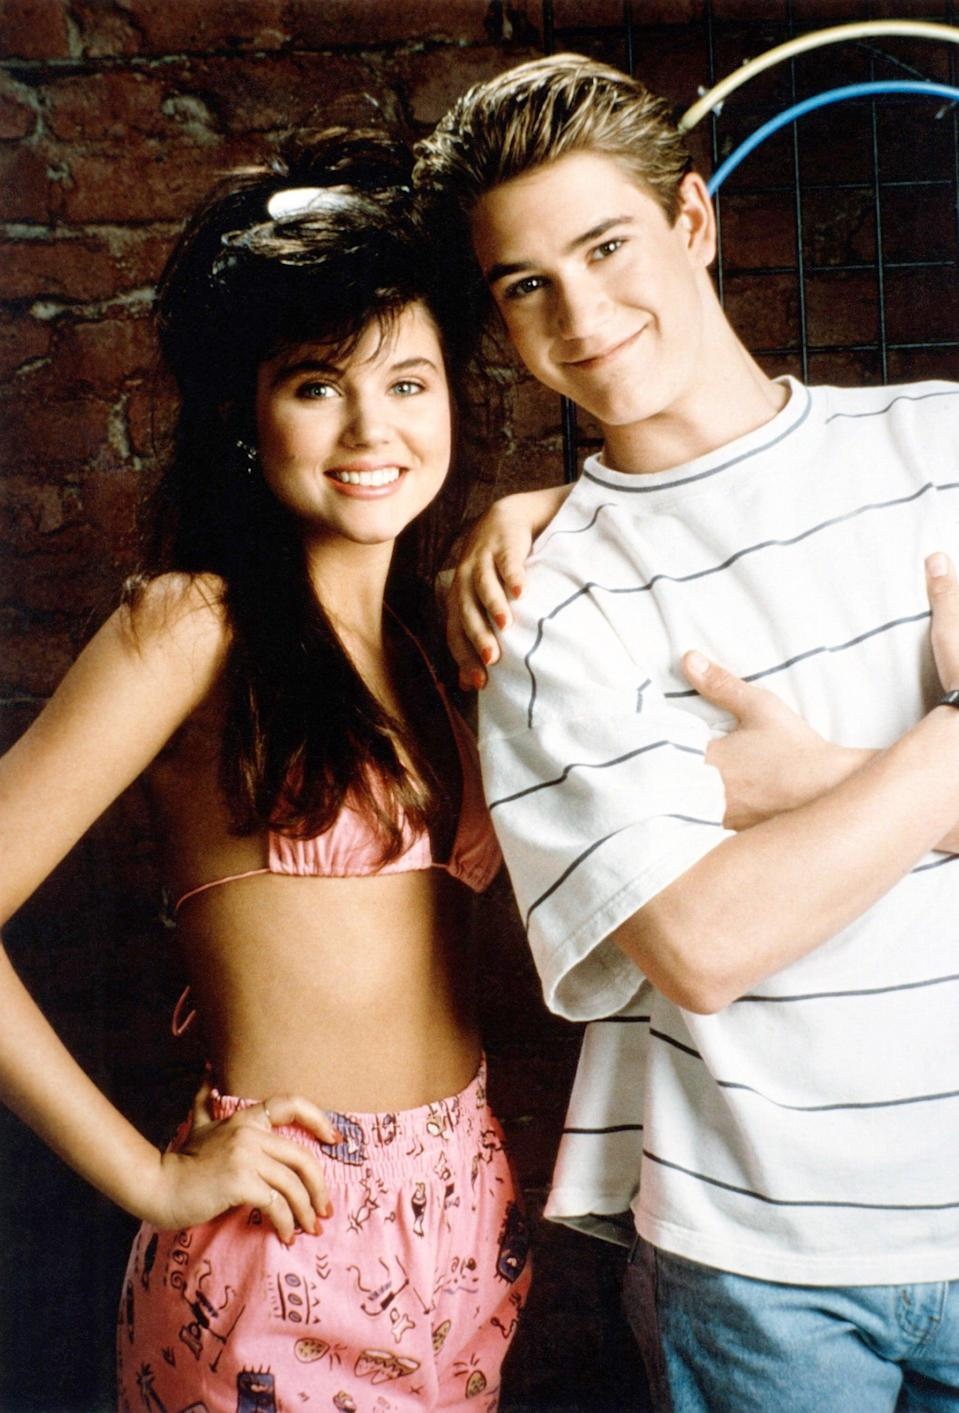 """<p>Make all the guys swoon as Kelly Kapowski from <b><a class=""""link rapid-noclick-resp"""" href=""""https://www.popsugar.com/Saved-by-the-Bell"""" rel=""""nofollow noopener"""" target=""""_blank"""" data-ylk=""""slk:Saved by the Bell"""">Saved by the Bell</a></b>. You just need a white lacy bandeau top, high-waisted jeans, and suspenders. Don't forget the bangin' hairstyle!</p>"""